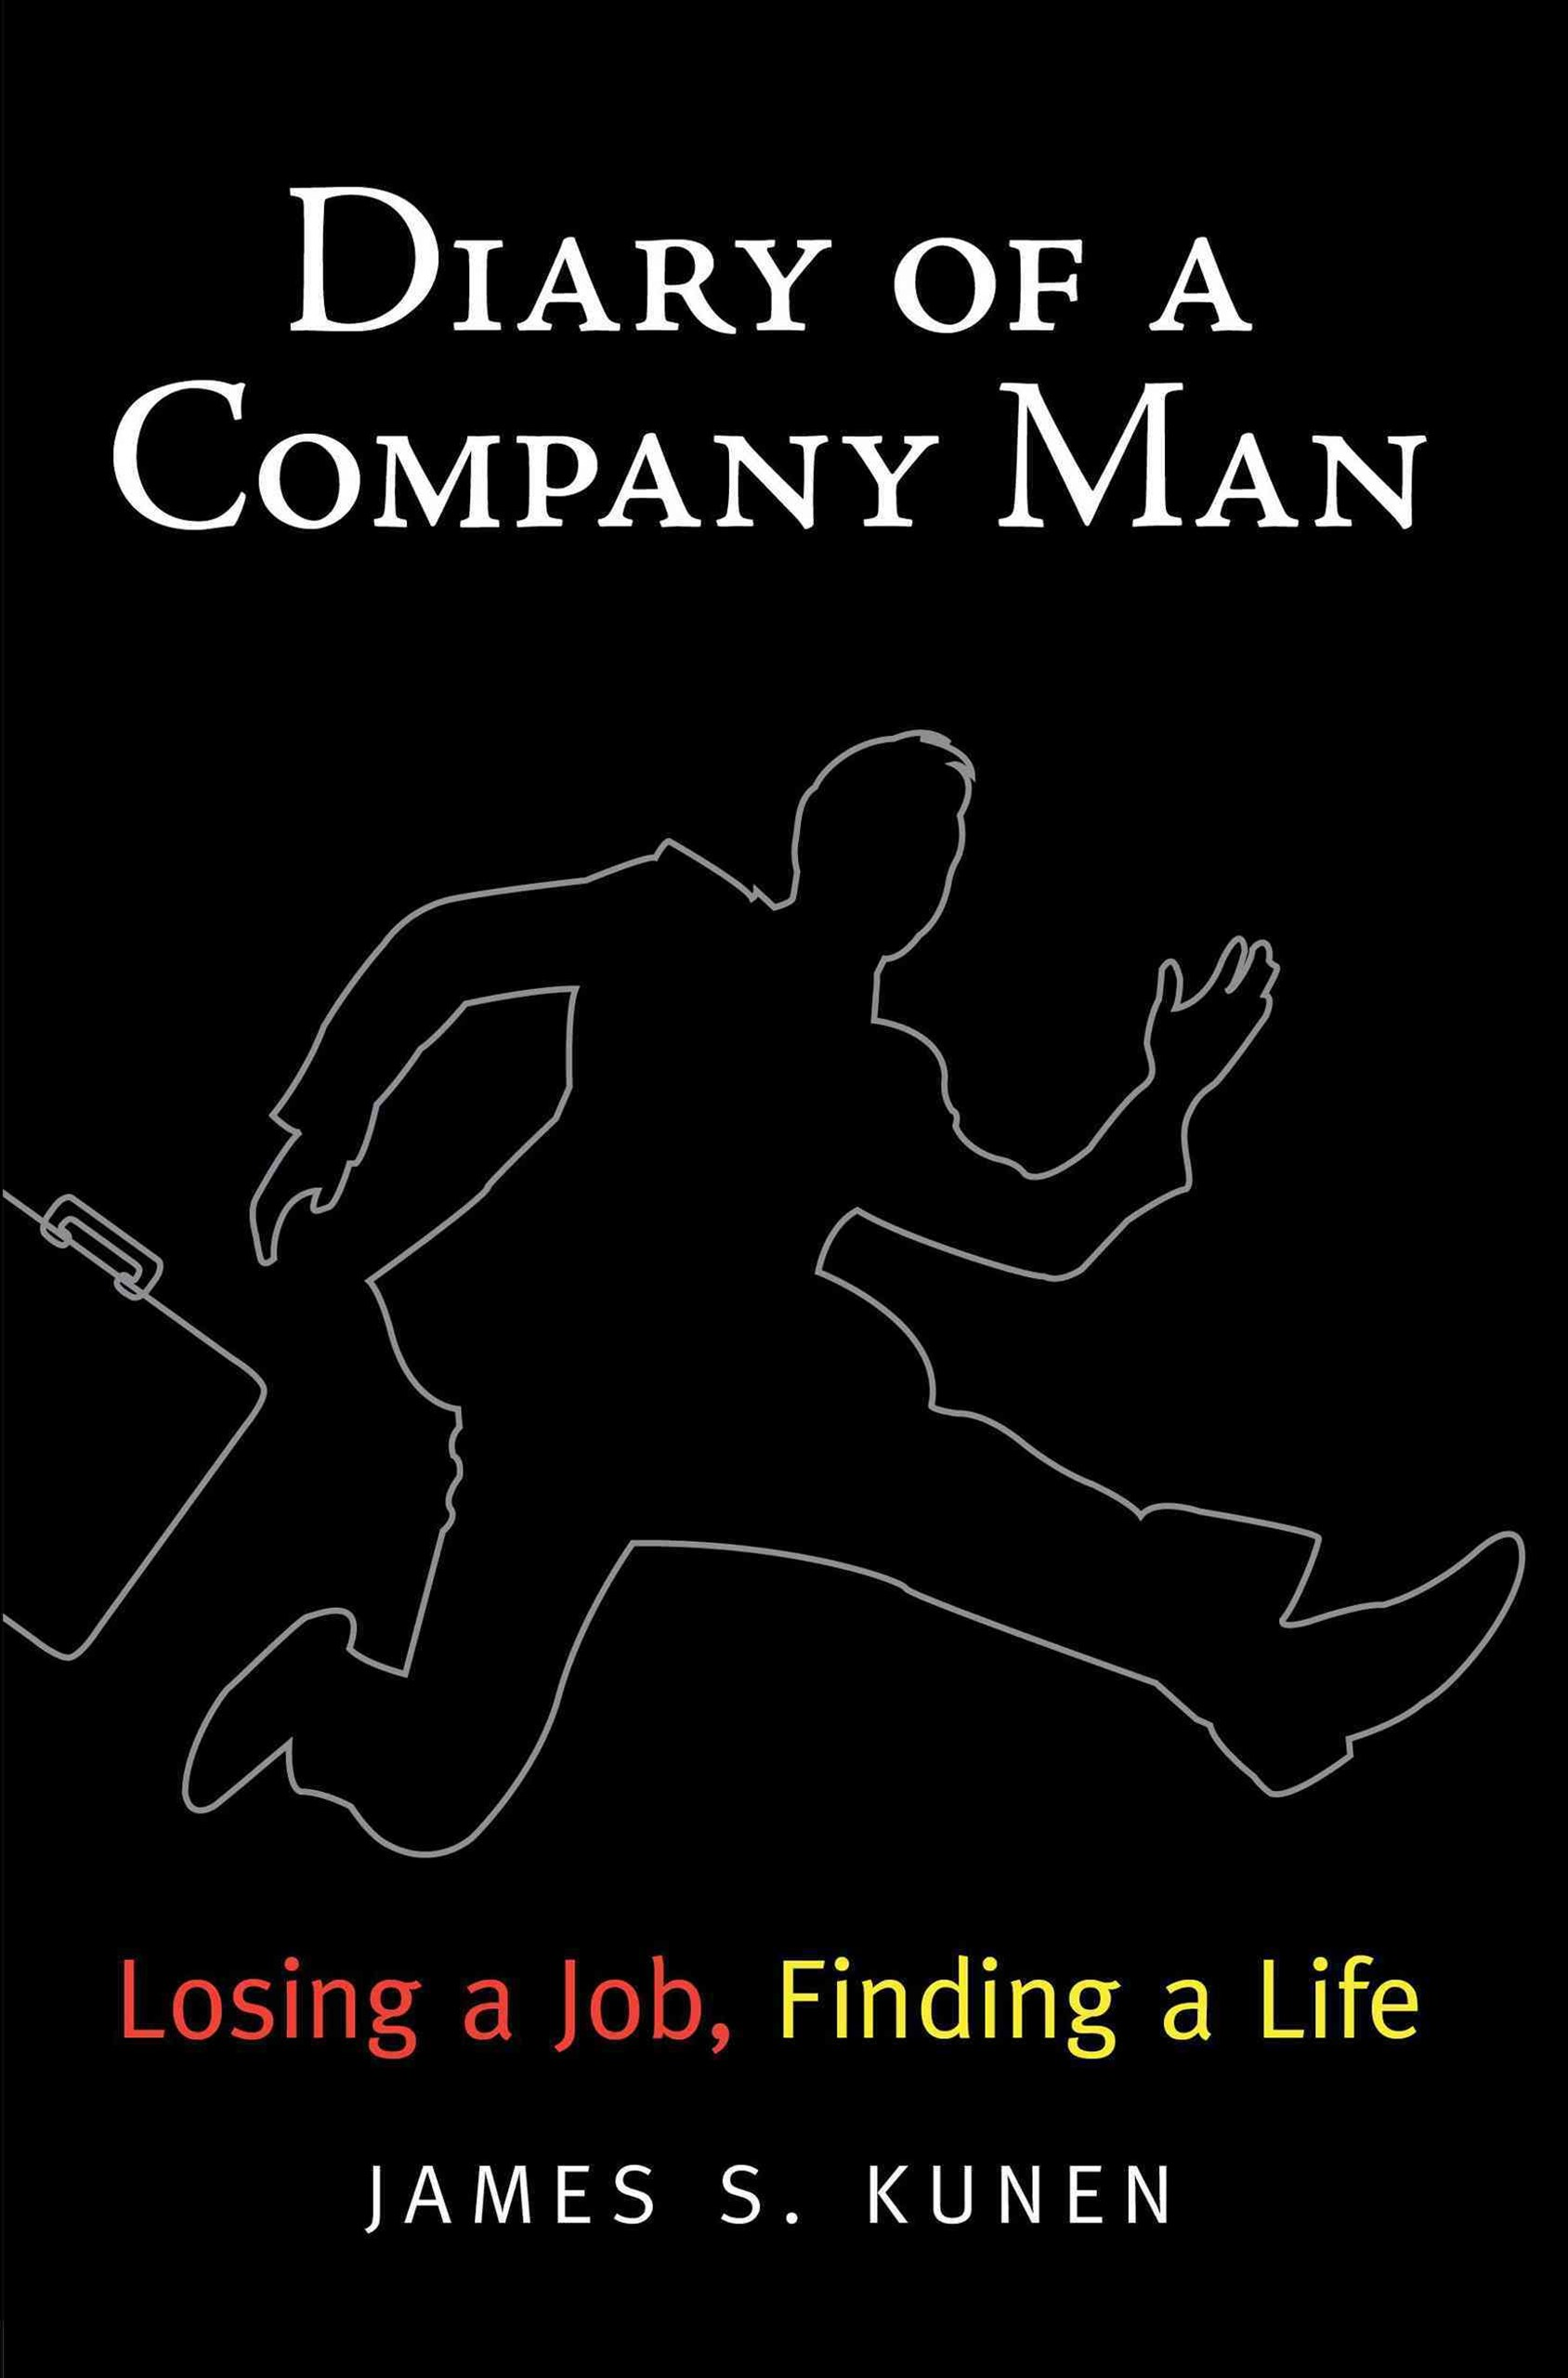 Diary of a Company Man